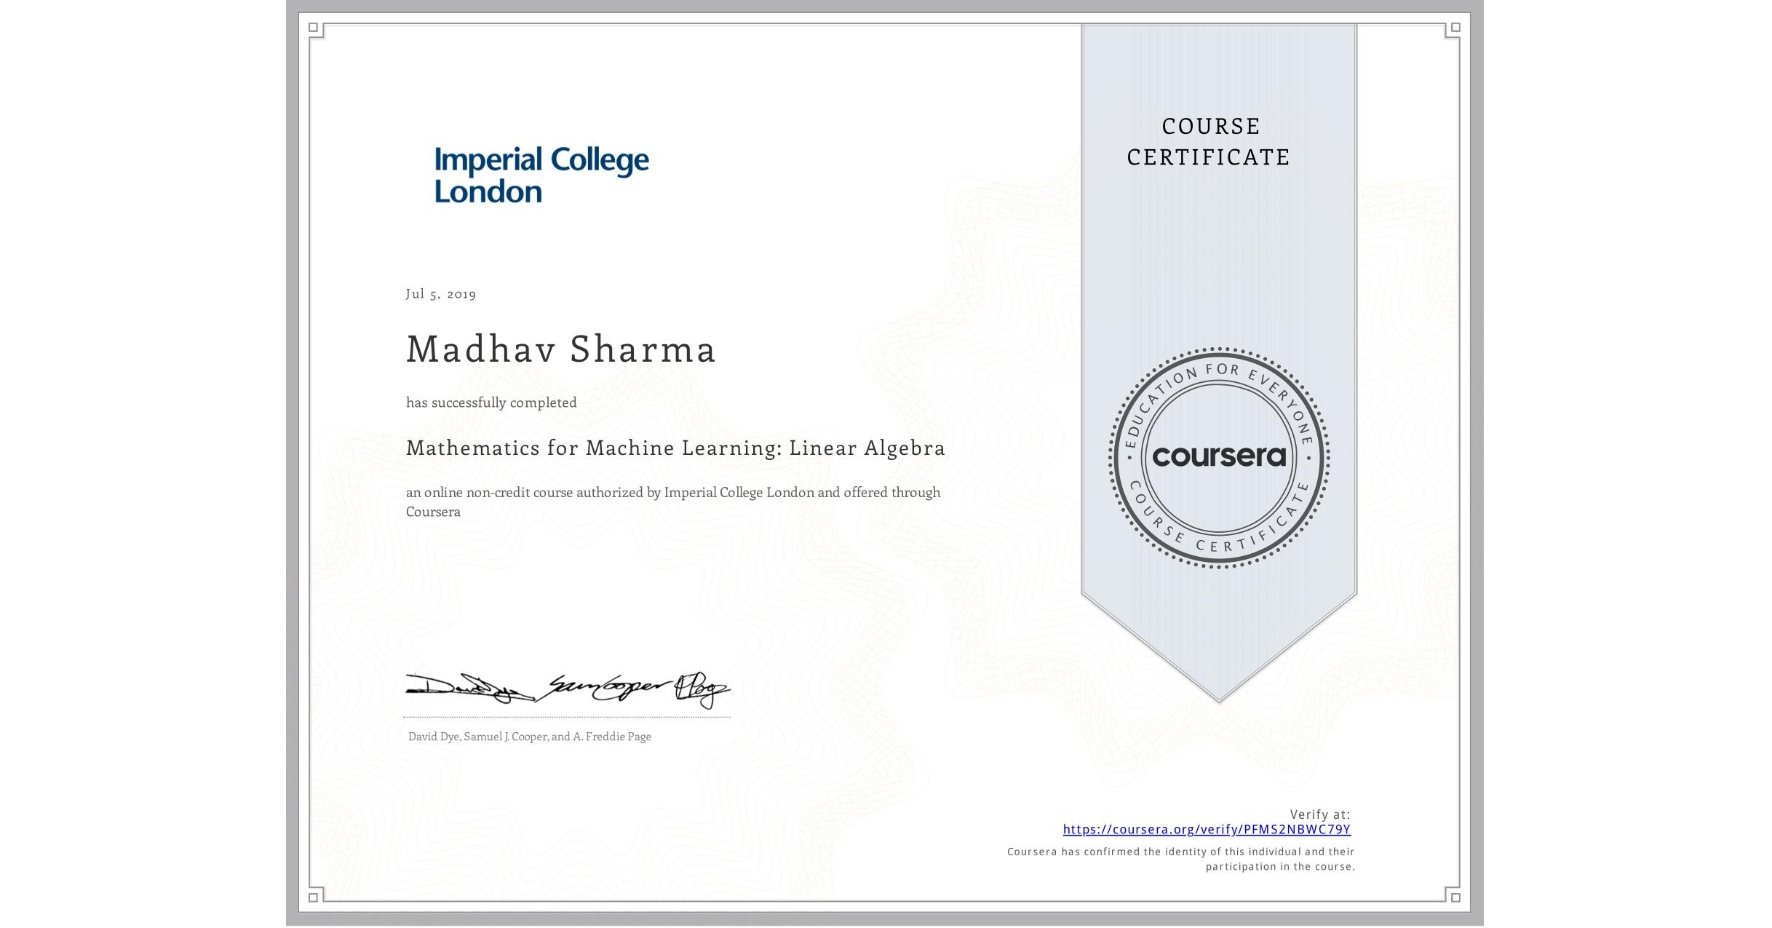 View certificate for Madhav Sharma, Mathematics for Machine Learning: Linear Algebra, an online non-credit course authorized by Imperial College London and offered through Coursera